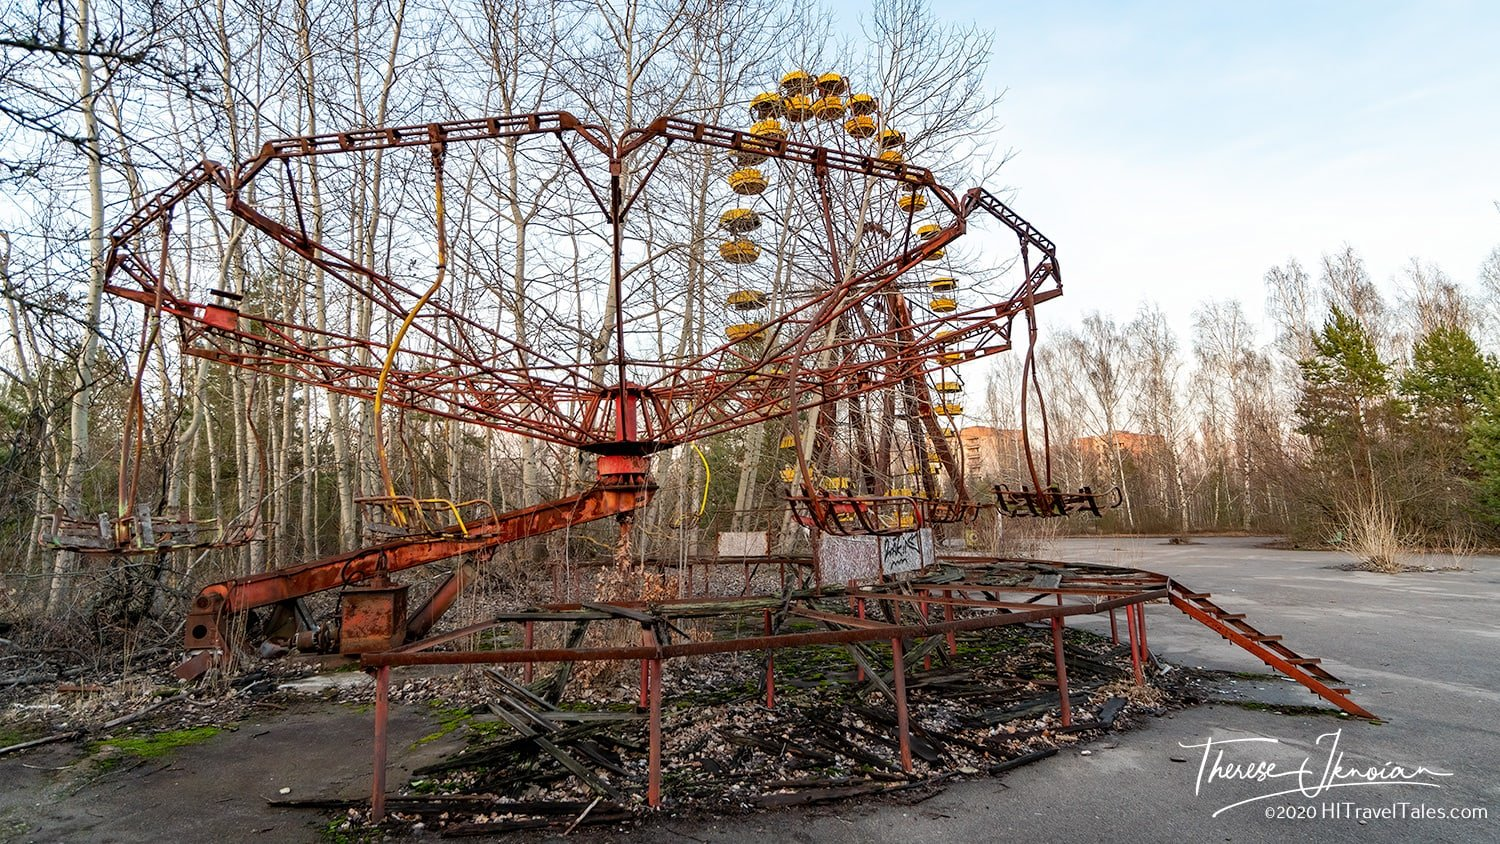 Amusement park rides sit near the Pripyat main square, rusted, falling apart and never to amuse children and adults.